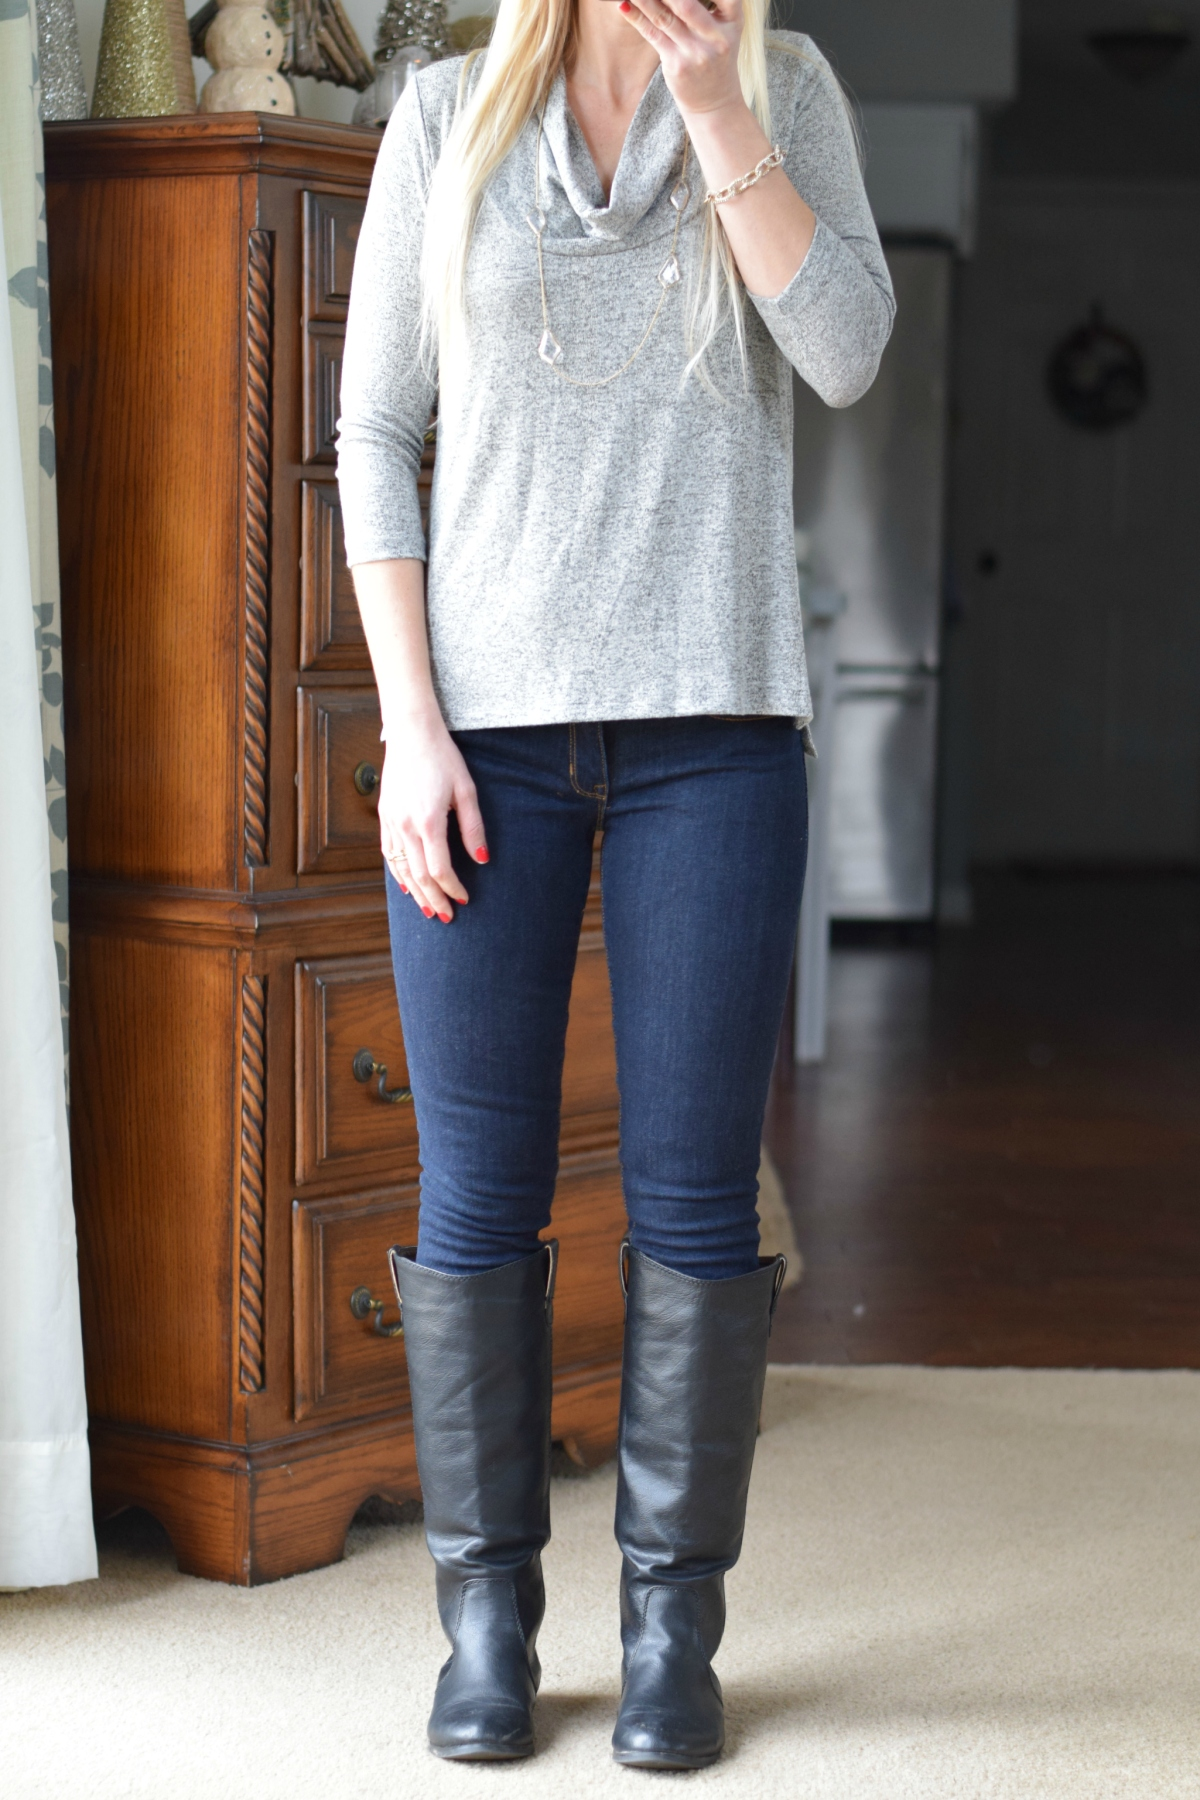 December 2015 Stitch Fix Review: Market and Spruce Chaimbers Cowl Neck Knit Top |www.pearlsandsportsbras.com|